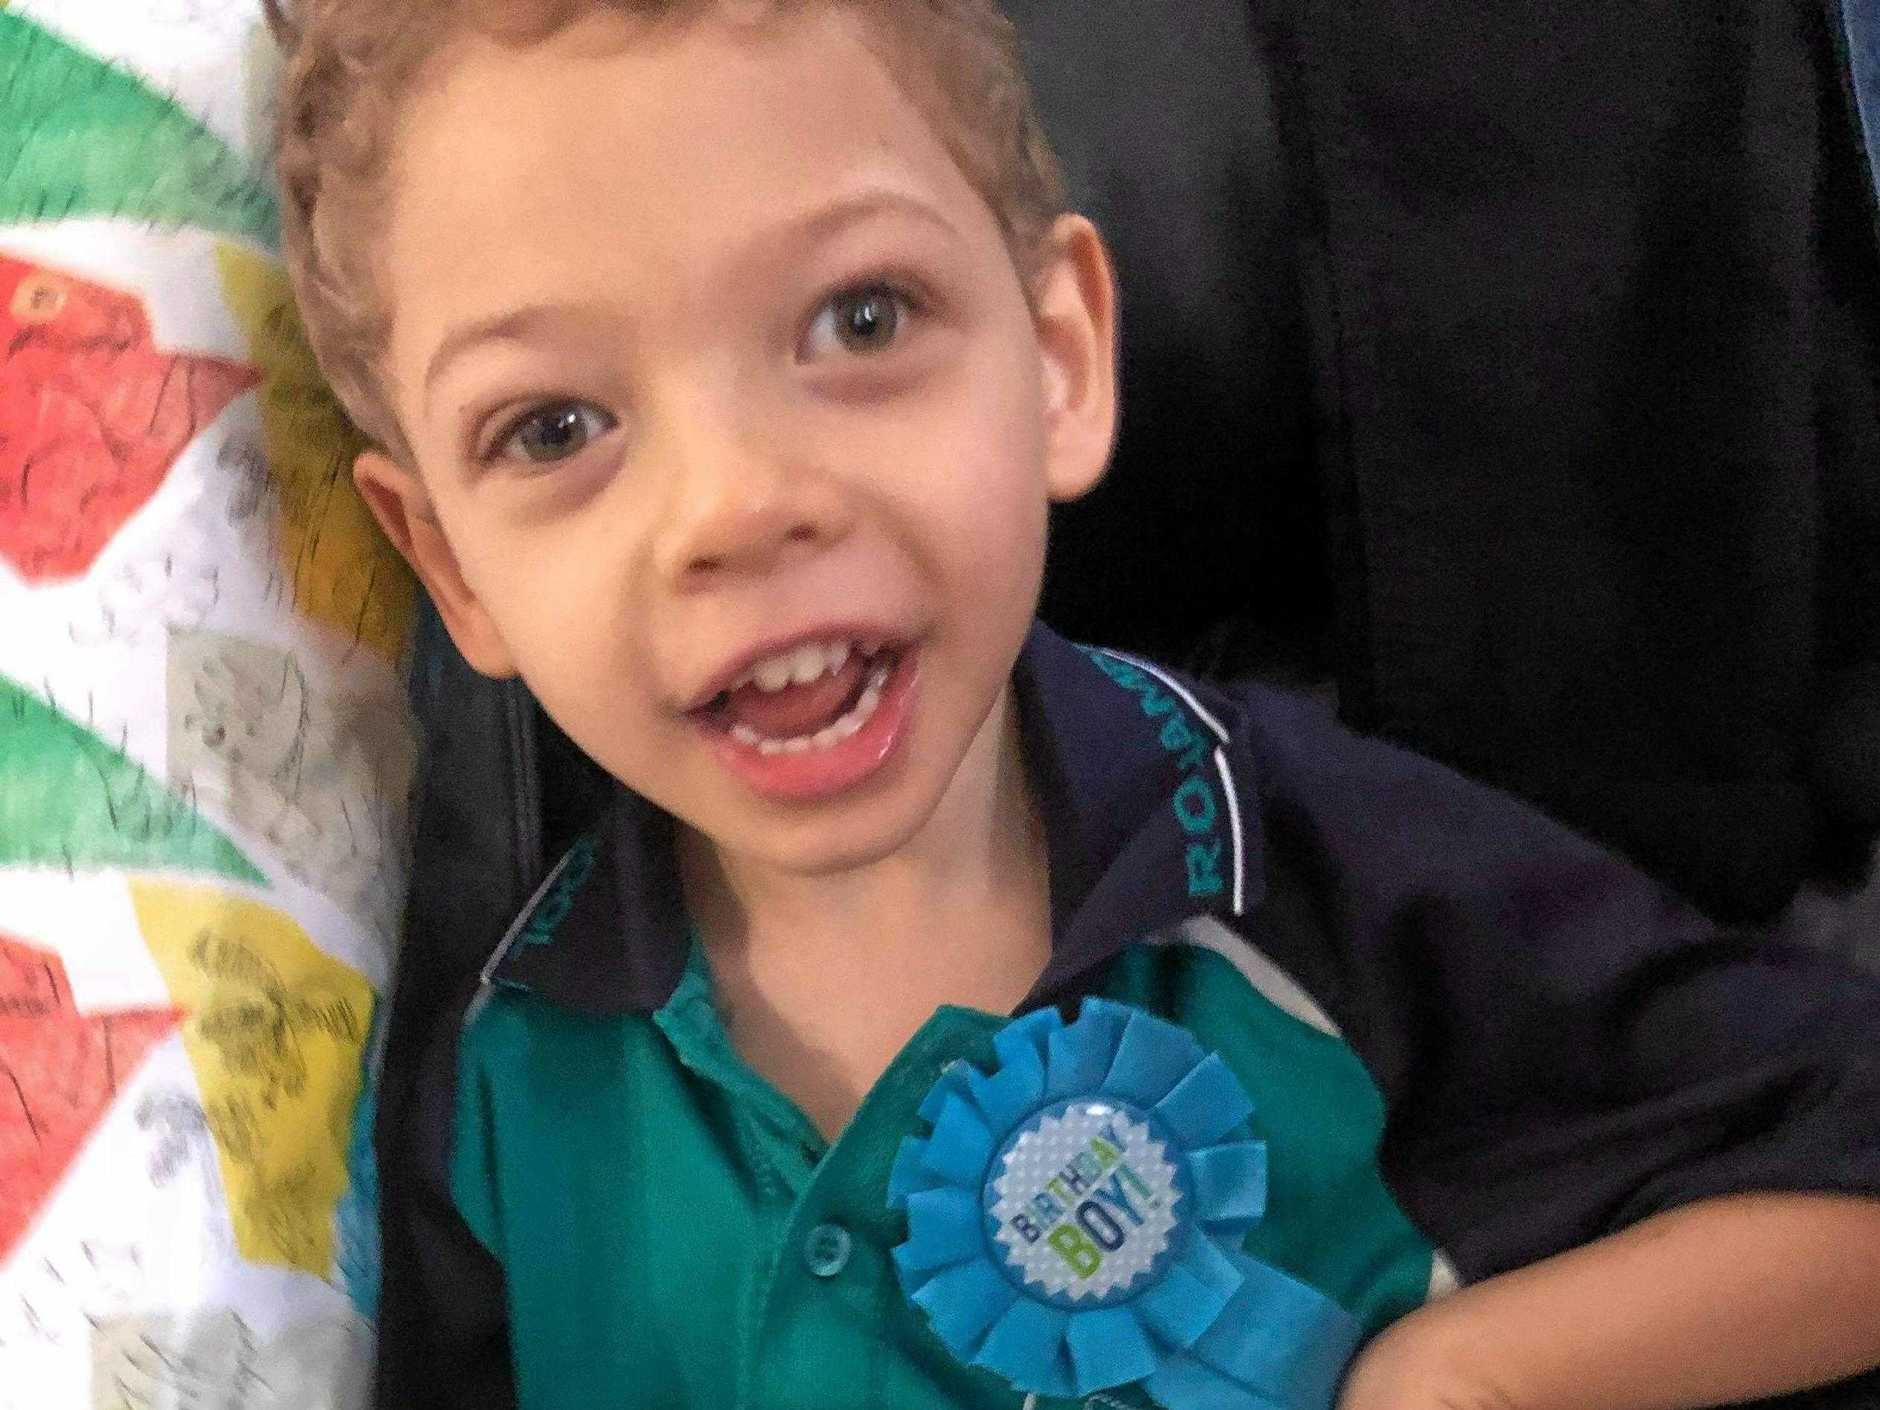 A community has rallied behind young Cooper.